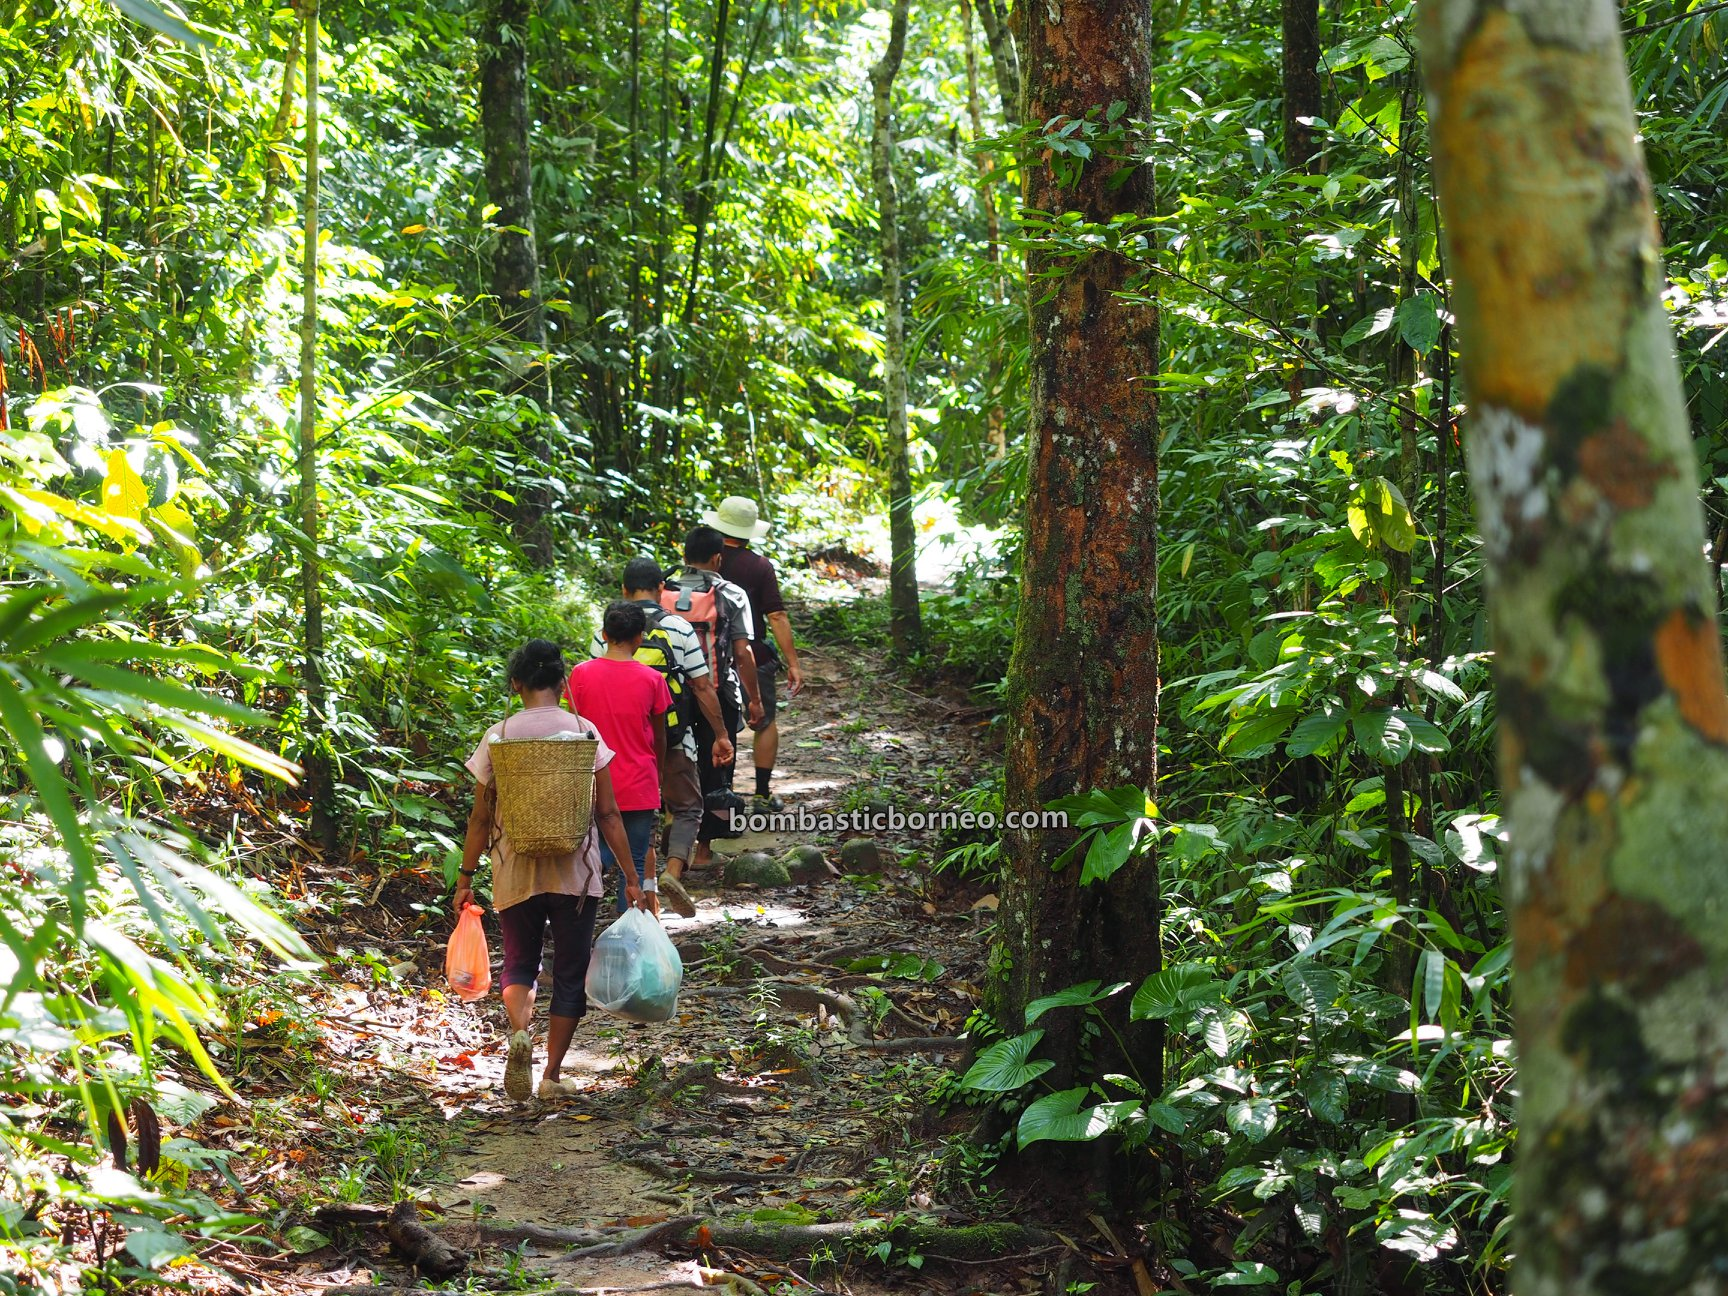 Dusun Simpang Empat, nature, outdoor, jungle hiking, exploration, Indonesia, Bengkayang, Desa Bengkawan, Seluas, Tourism, travel guide, native, village, 婆罗洲丛林徒步, 印尼西加里曼丹